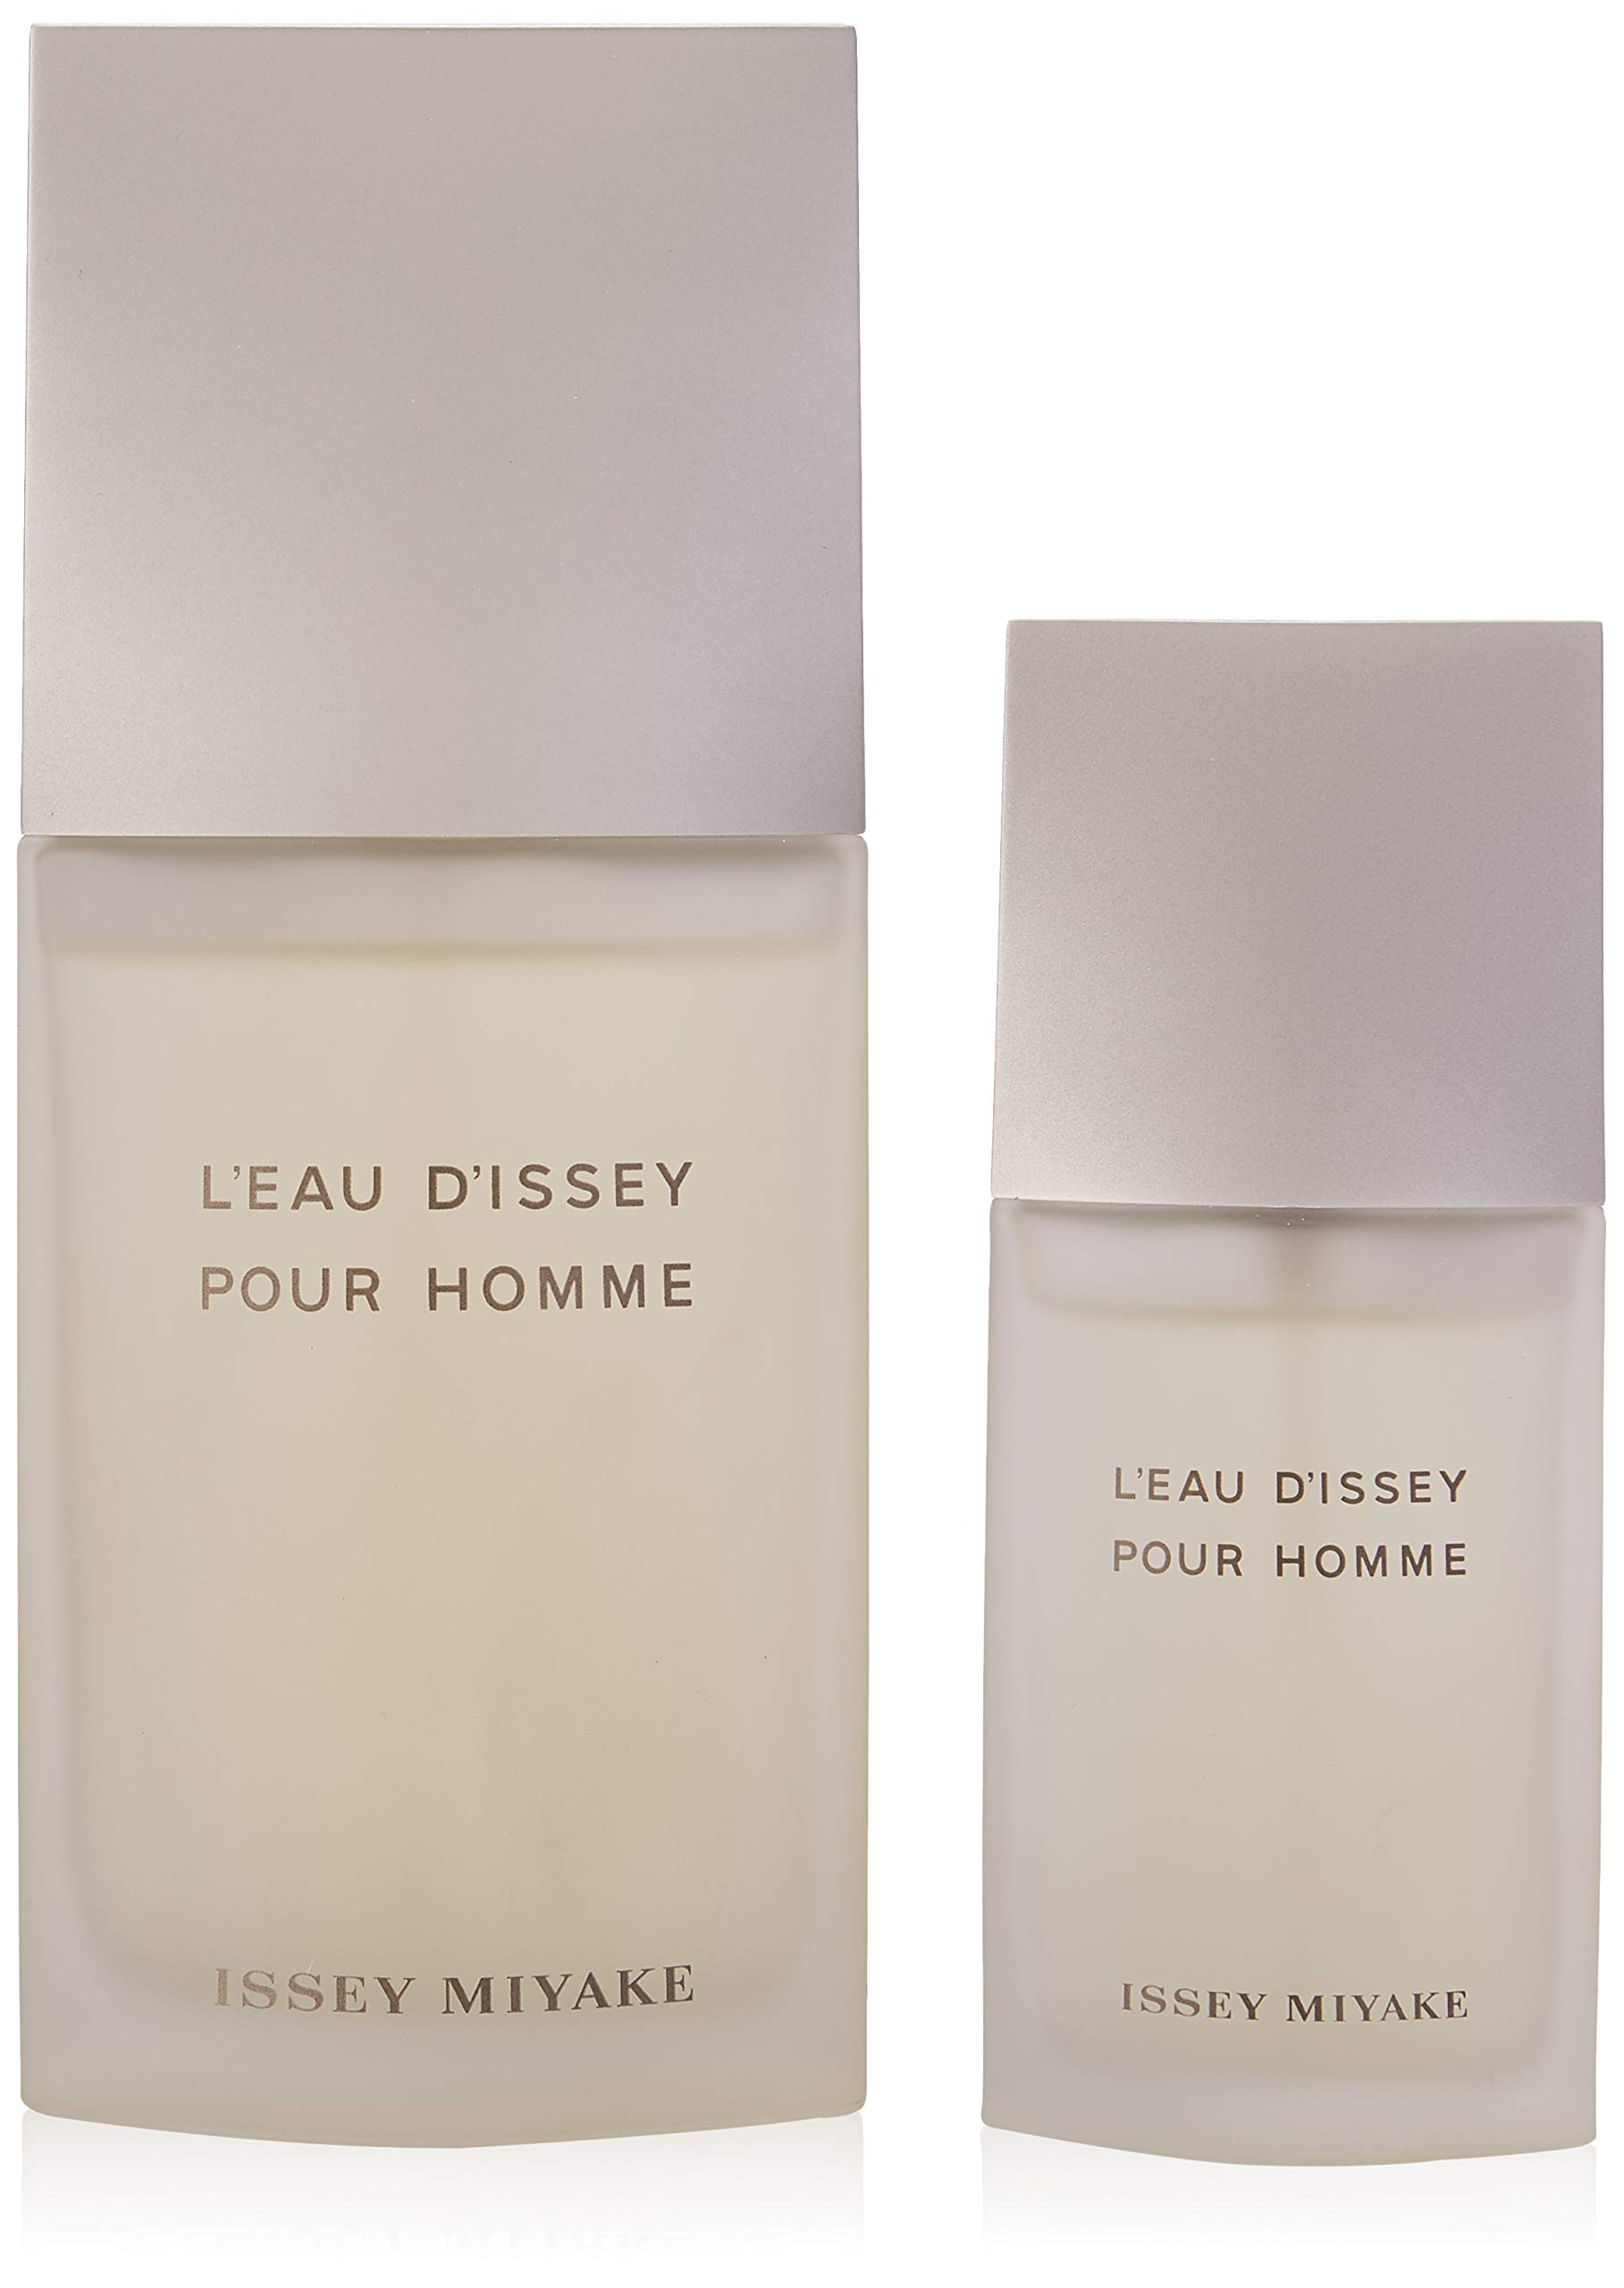 ISSEY MIYAKE L'Eau D'Issey Men Gift Set, 2 Count by Issey Miyake